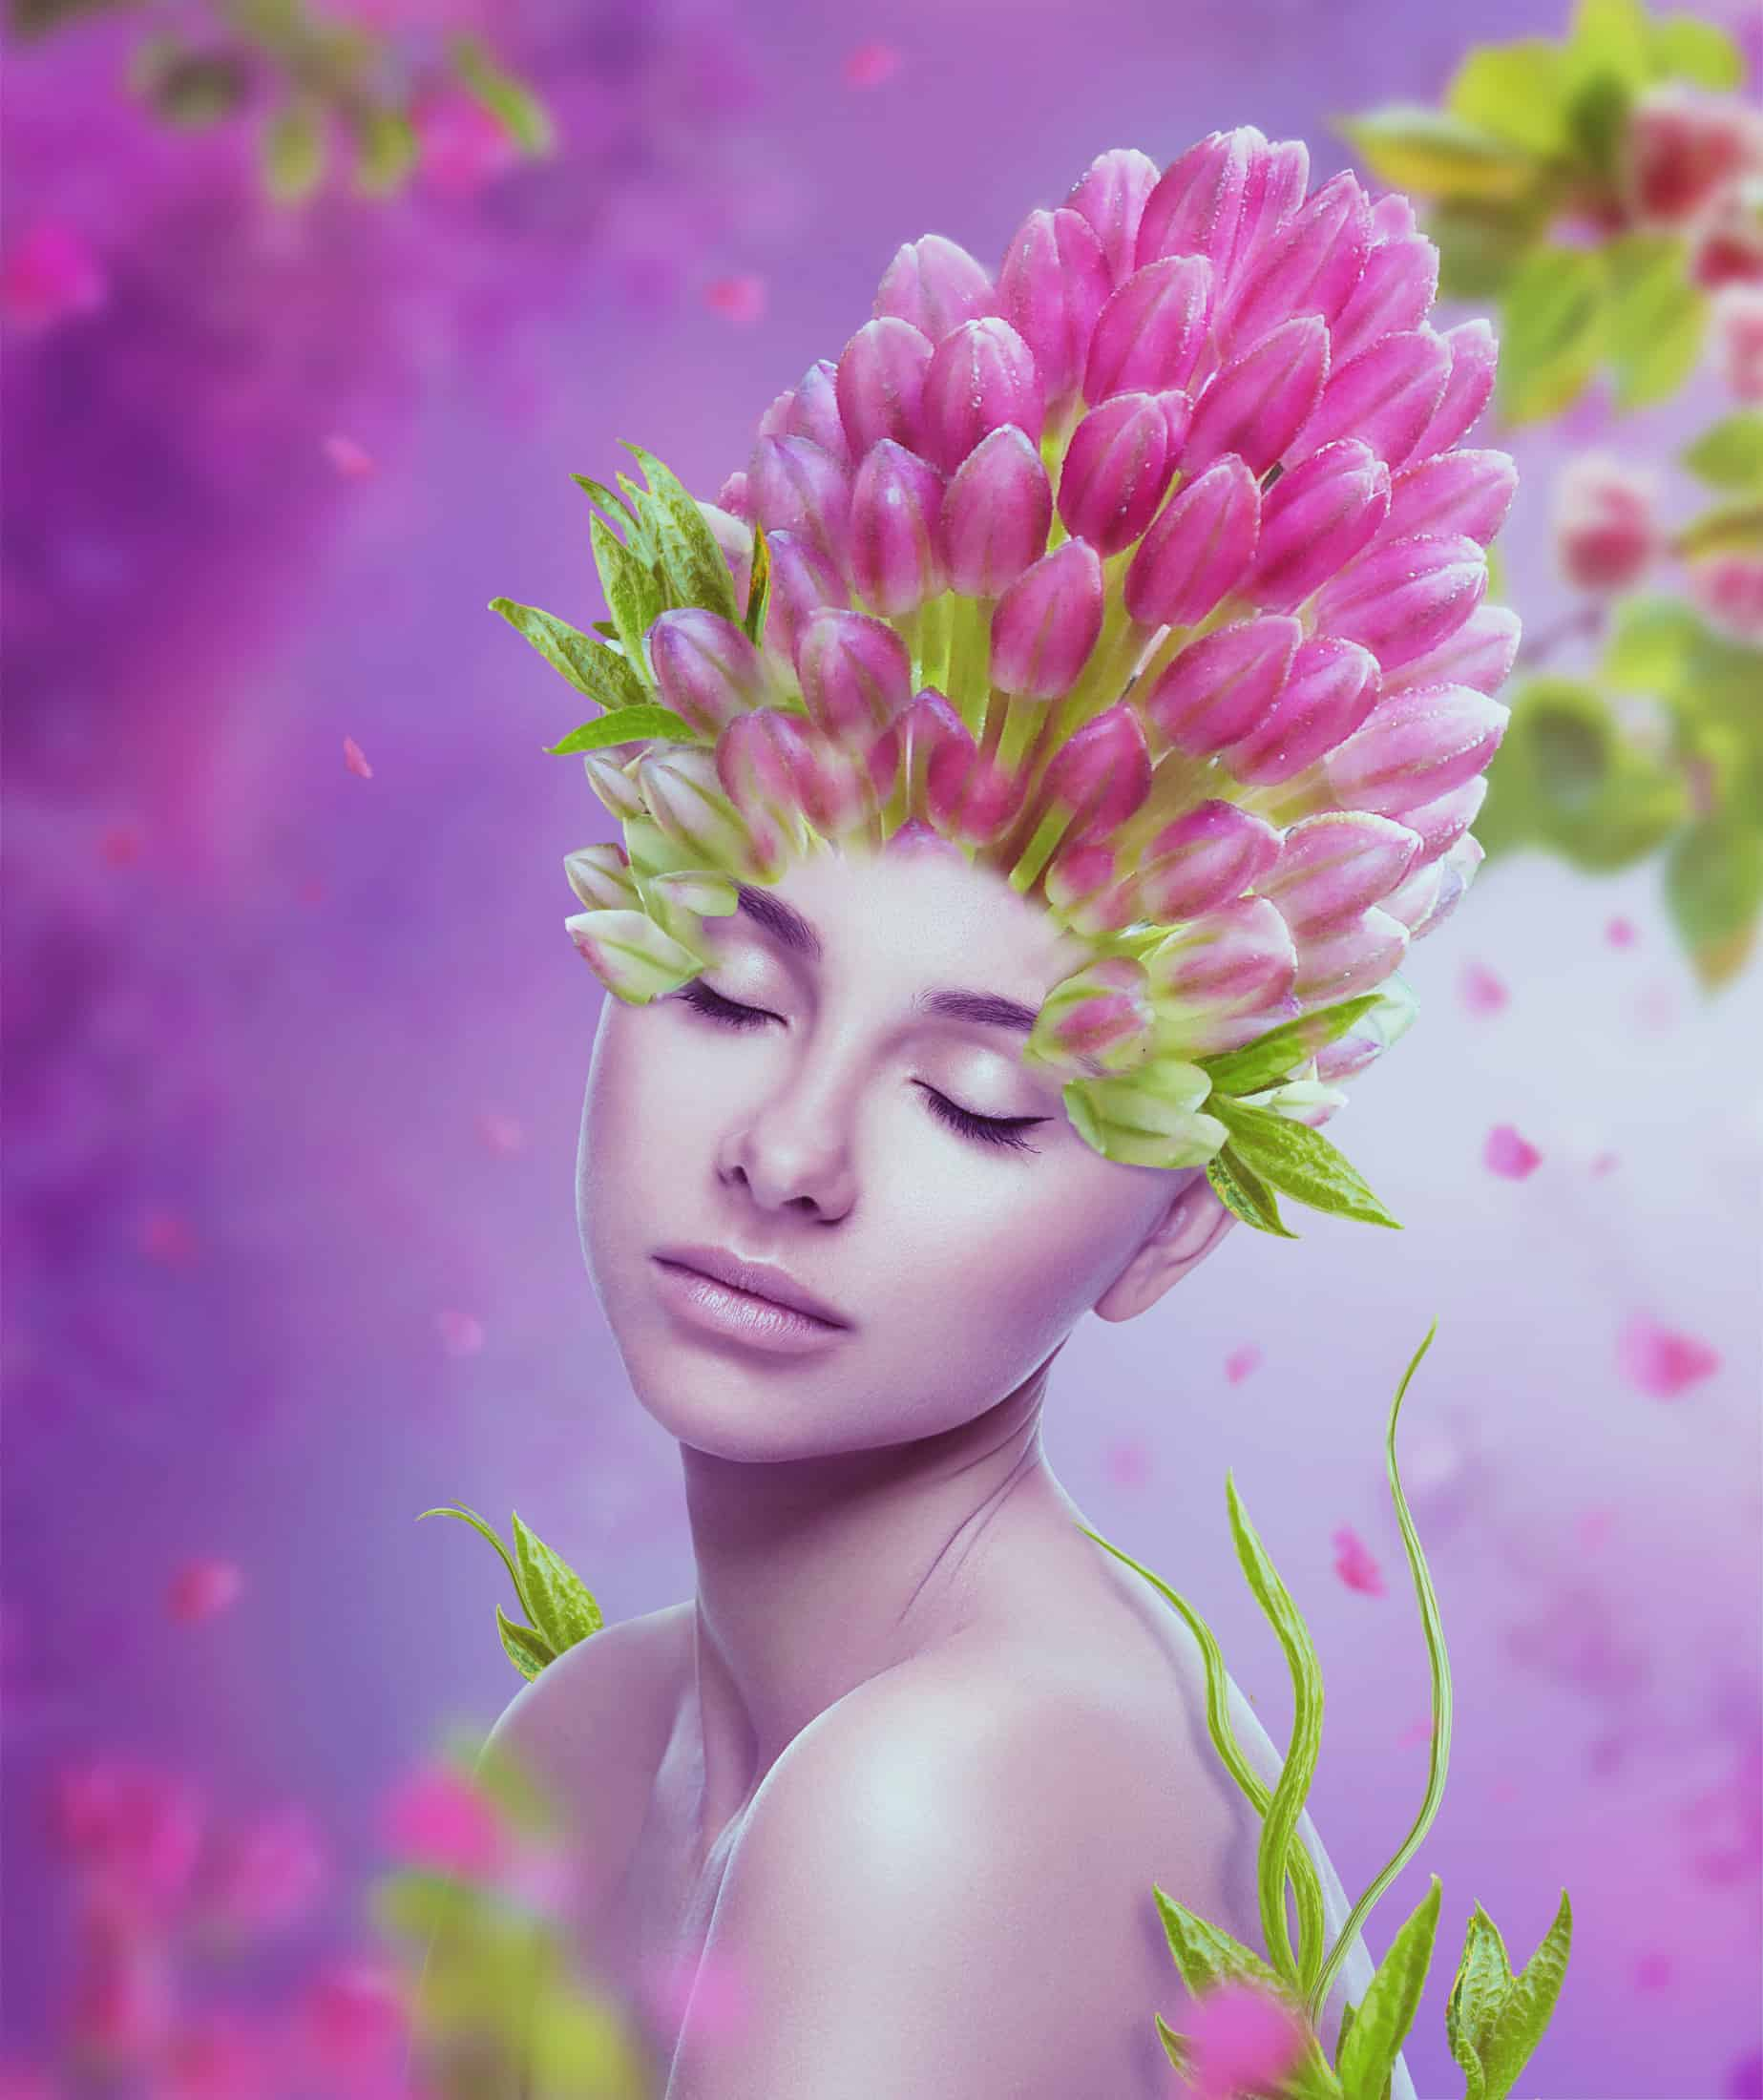 How to Create a Flower Portrait Photo Manipulation With Adobe Photoshop